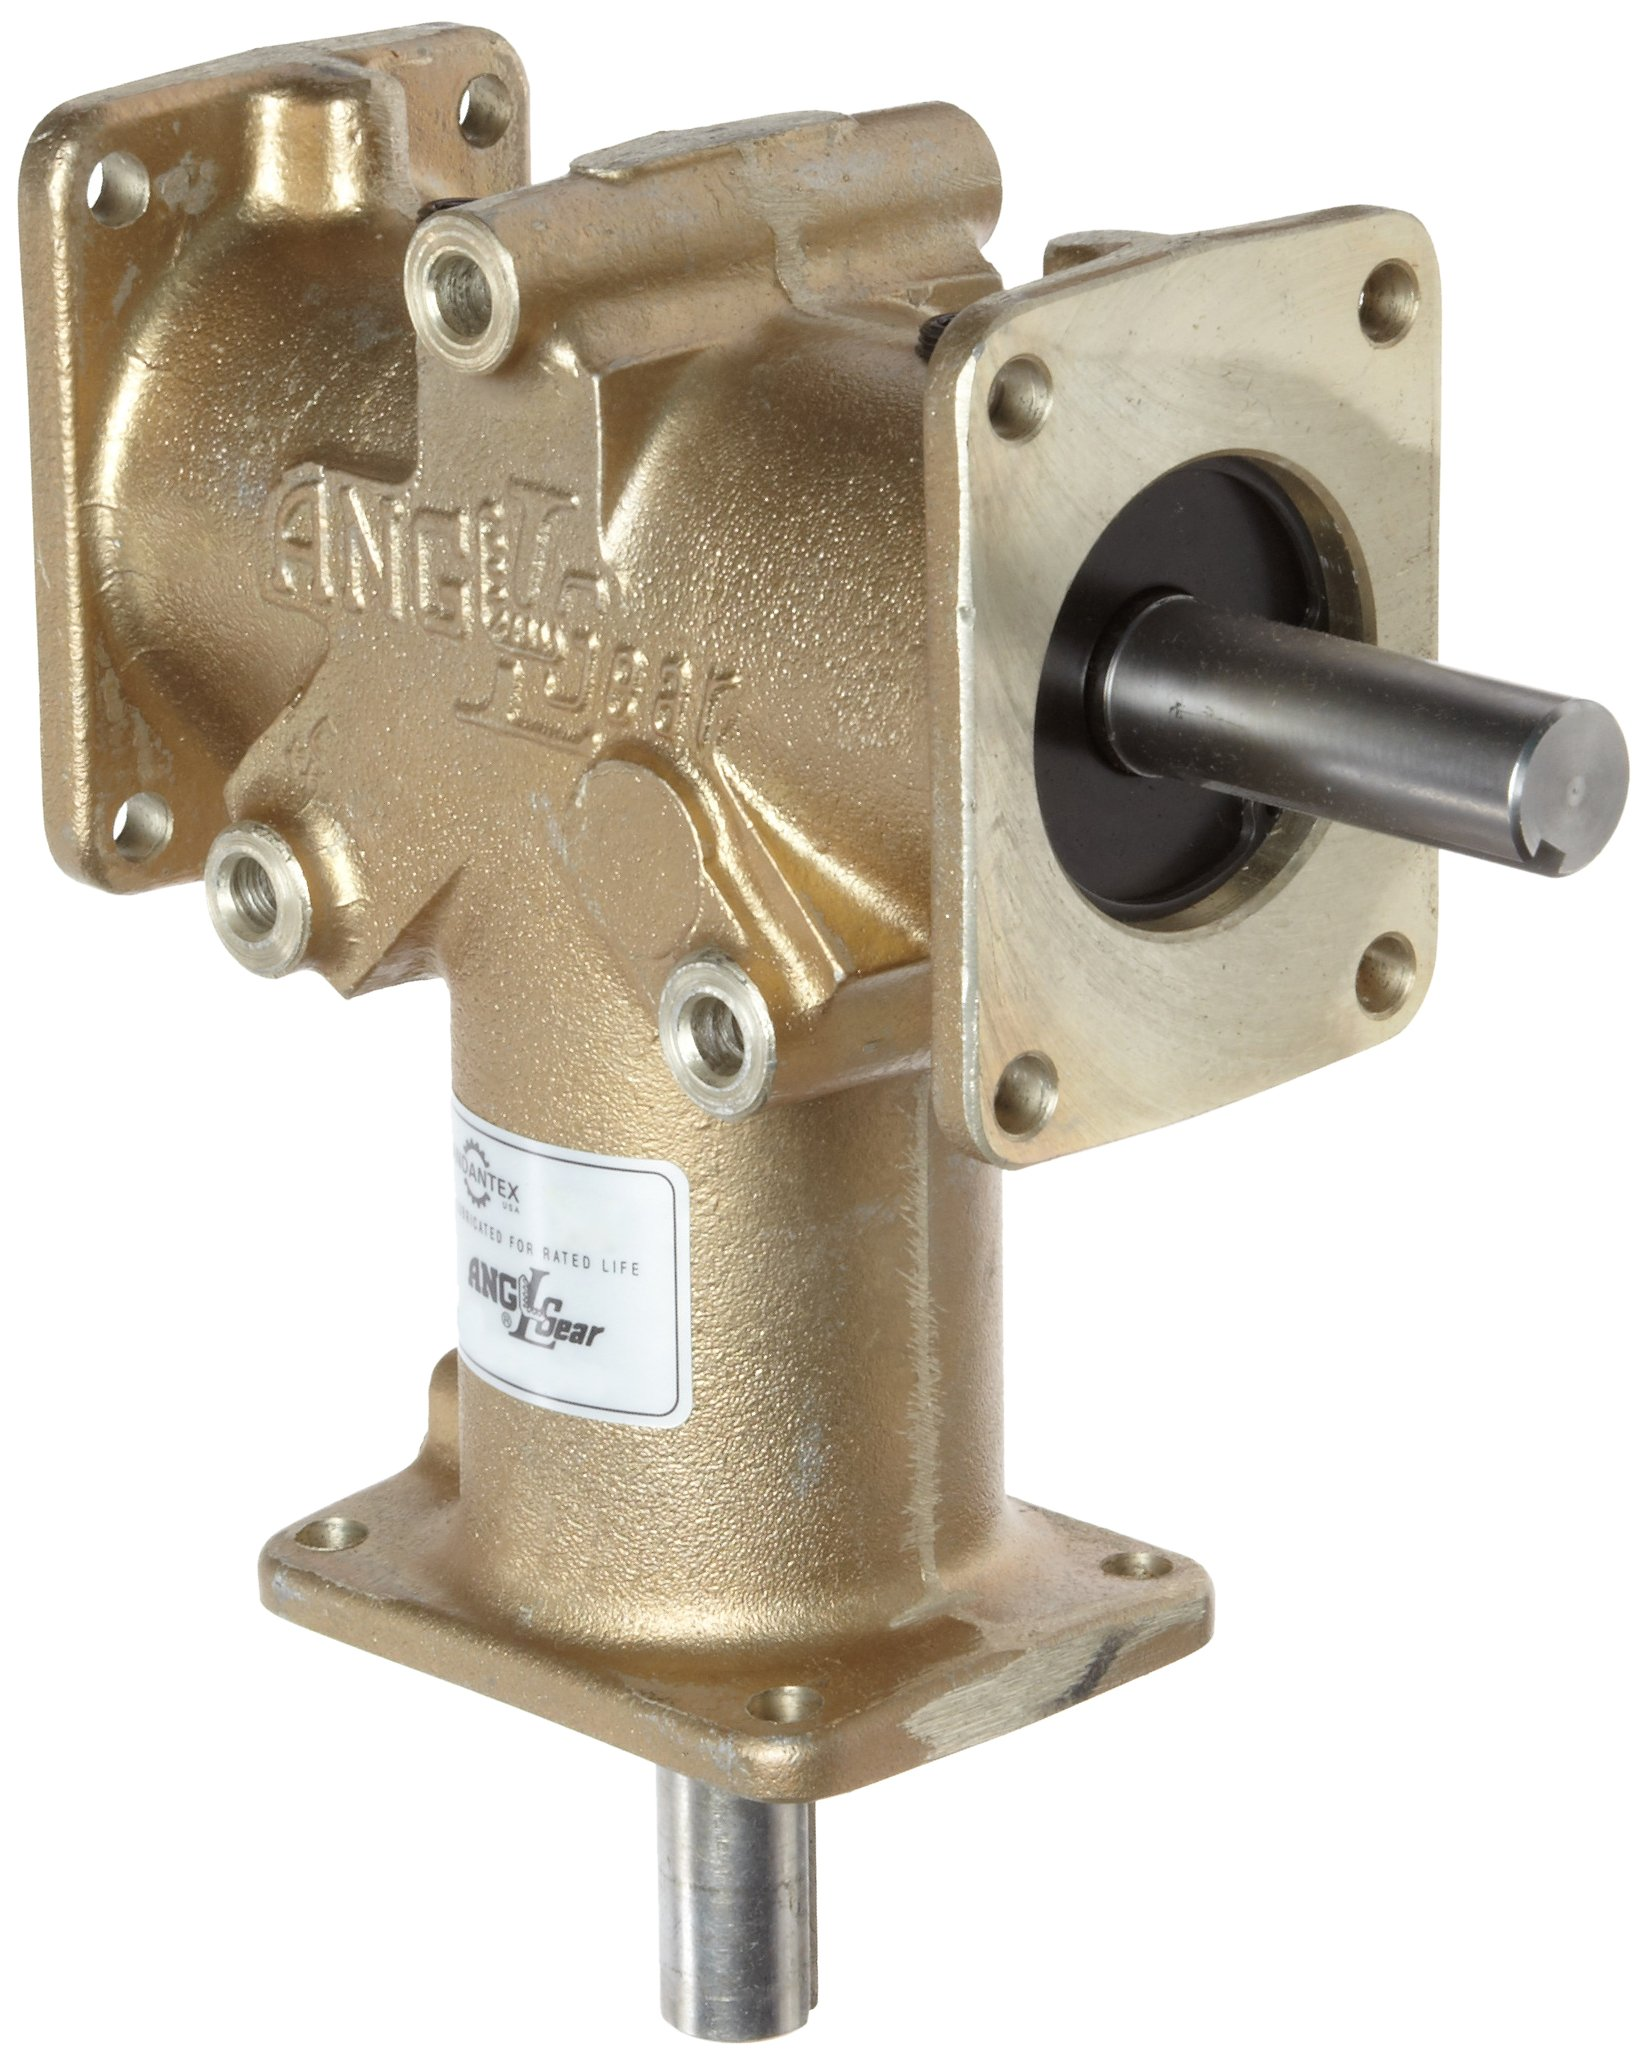 Andantex R3330-2 Anglgear Right Angle Bevel Gear Drive, Universal Mounting, Single Output shaft, 3 Flange, Inch, 3/4'' Shaft Diameter, 2:1 Ratio.1.24 Hp at 1750rpm